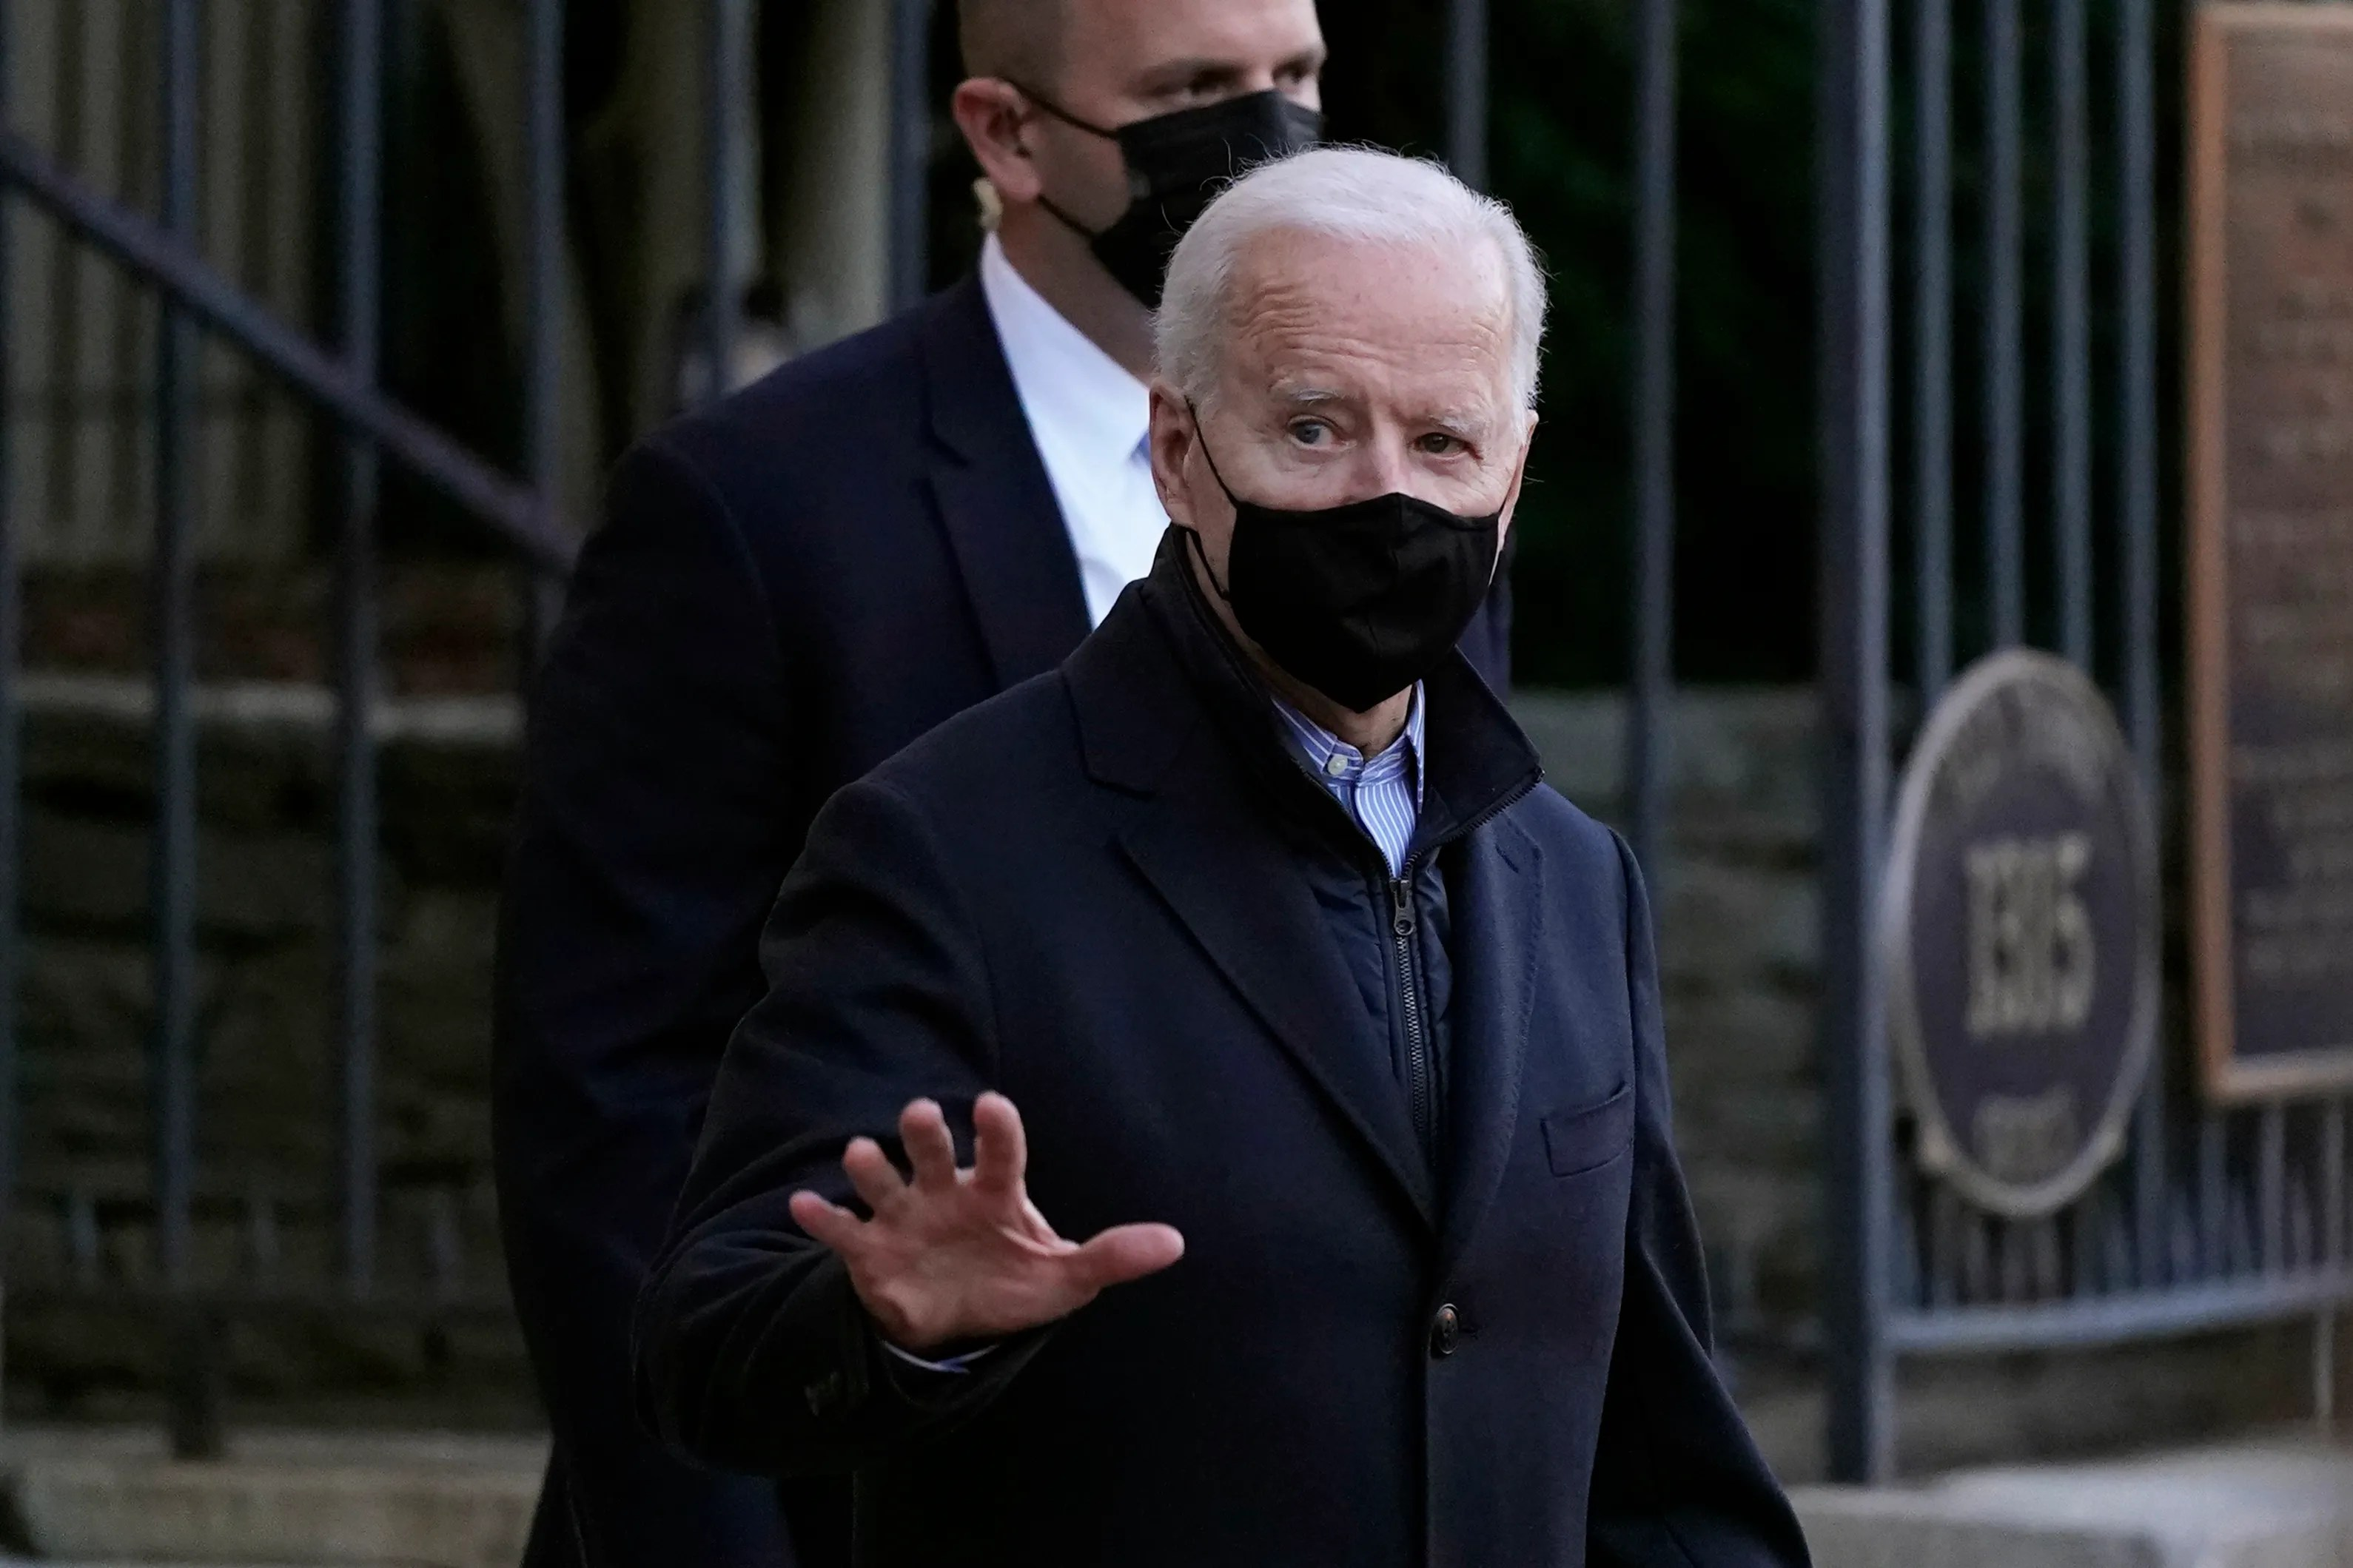 President Joe Biden departs after attending Mass at Holy Trinity Catholic Church in the Georgetown neighborhood of Washington on March 6, 2021.